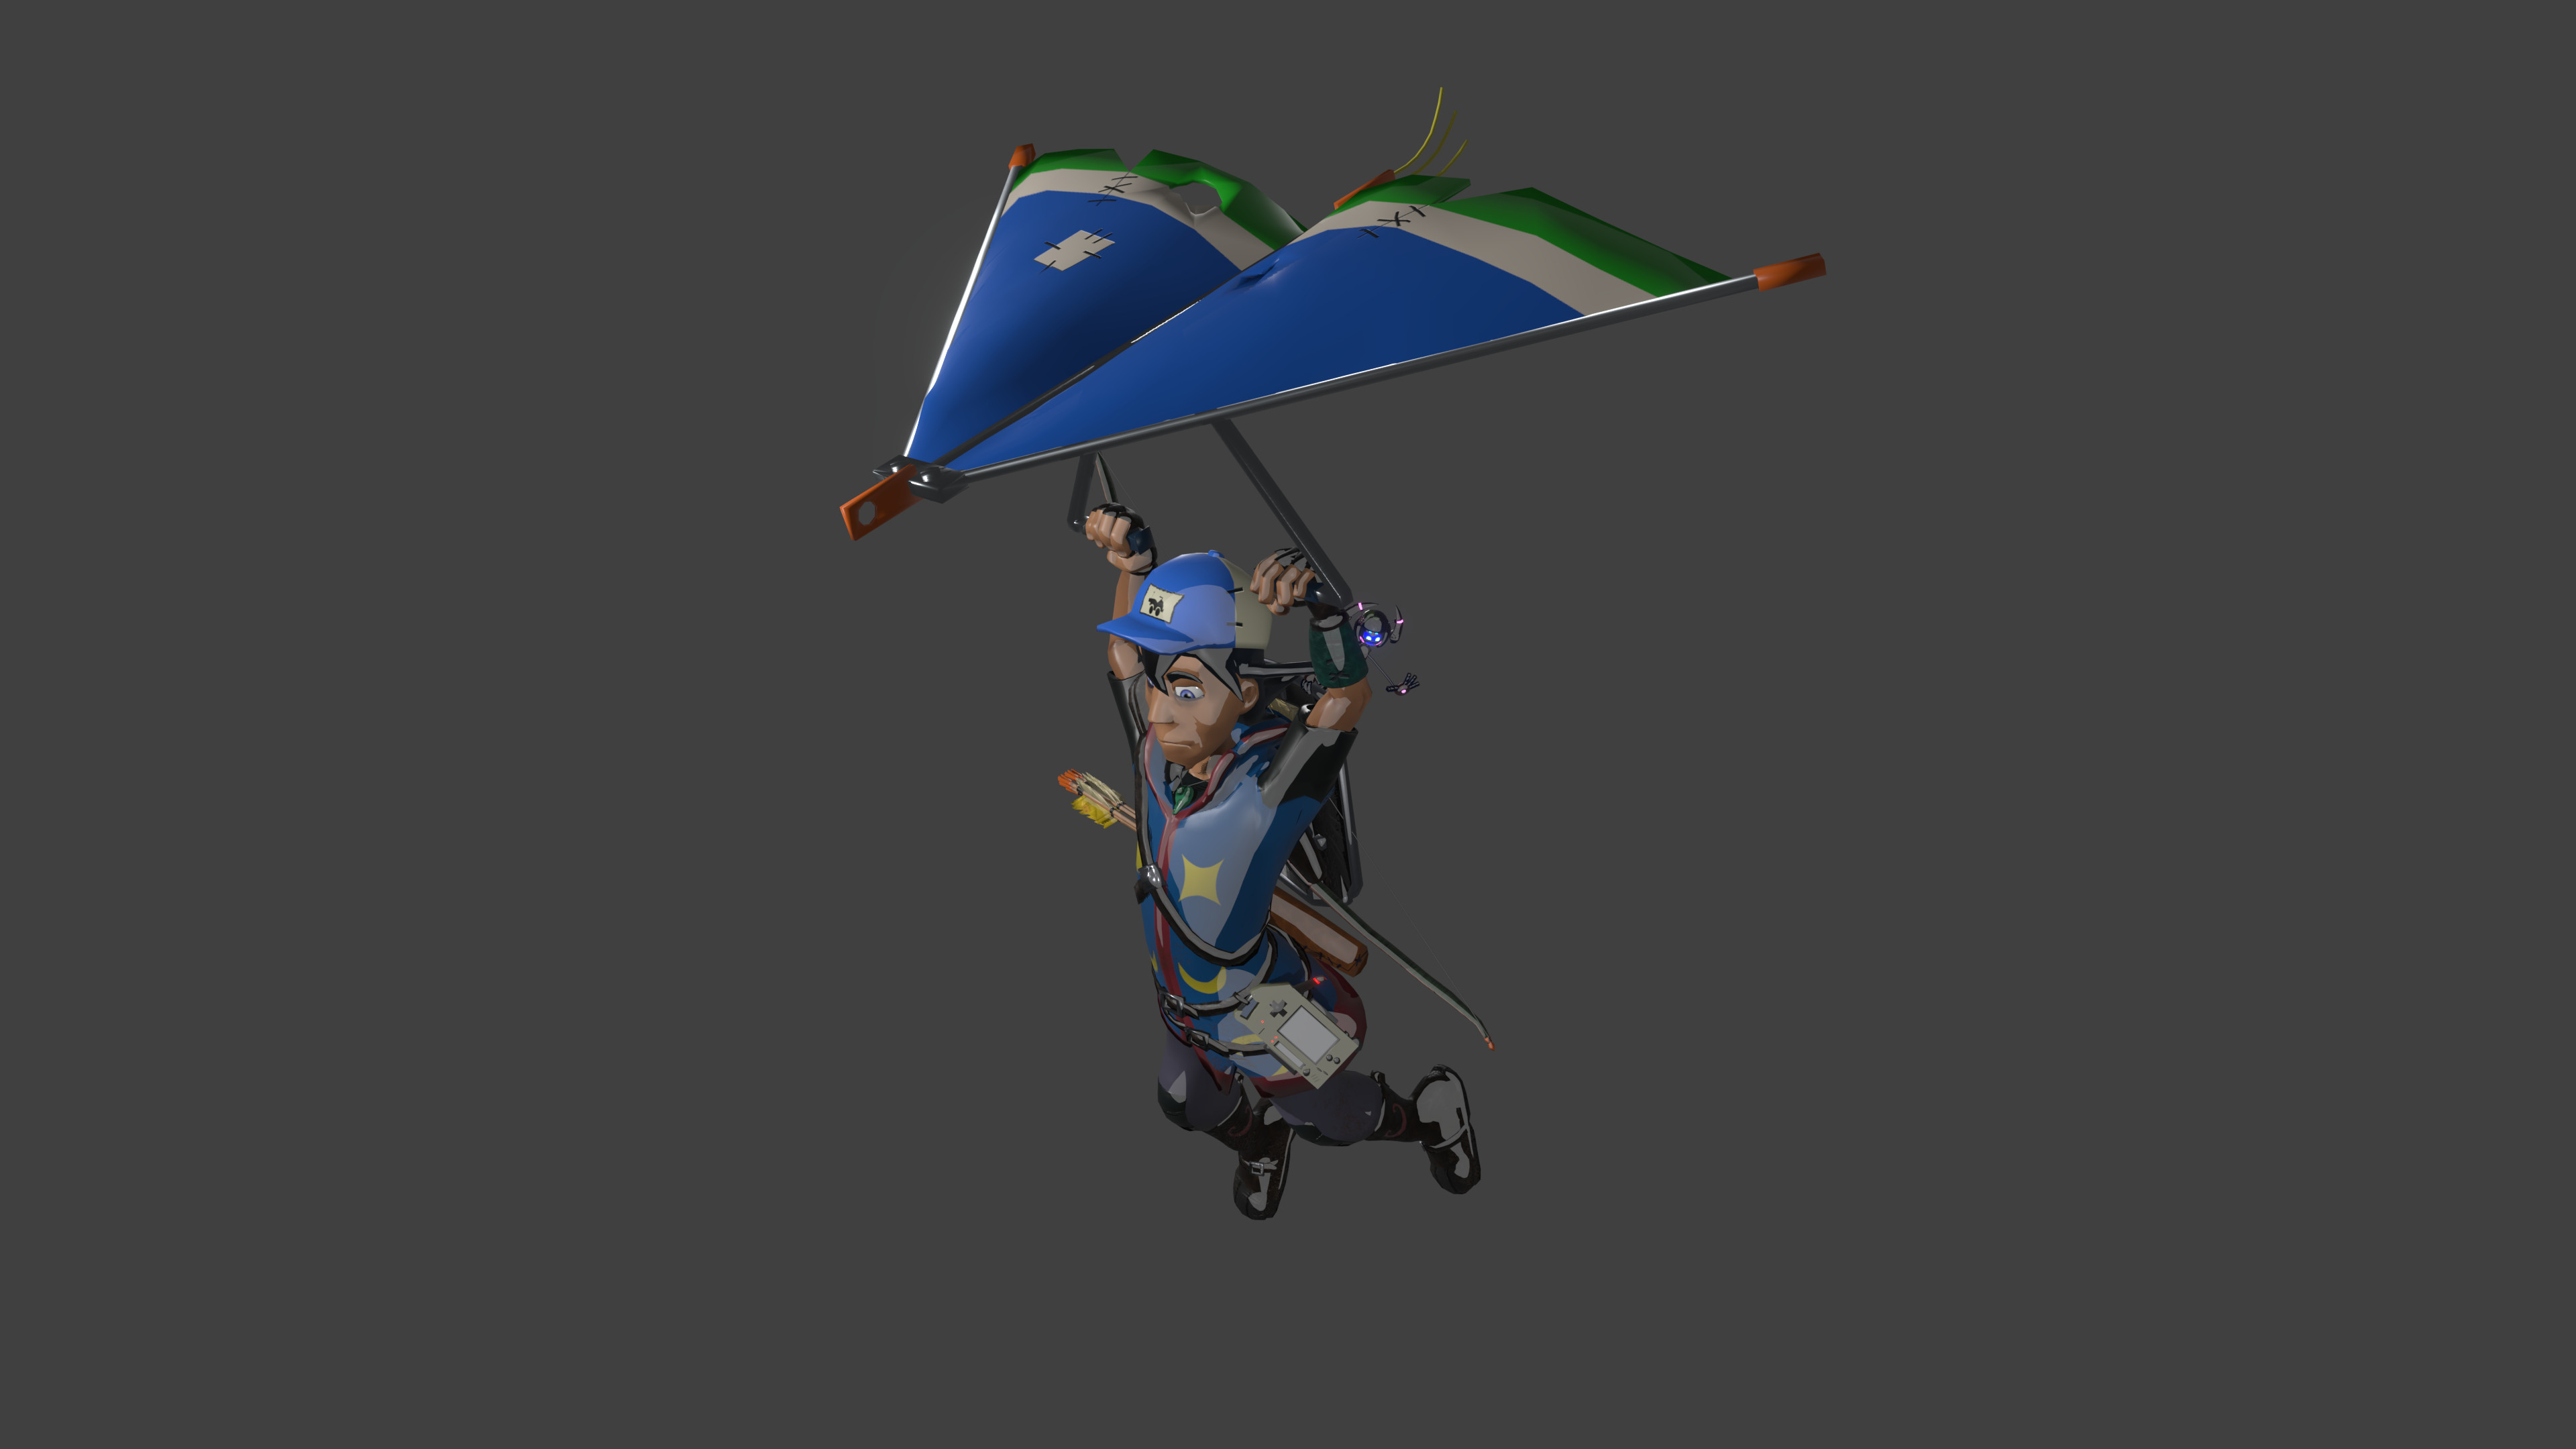 I feel like a paraglider is necessary for all open world characters